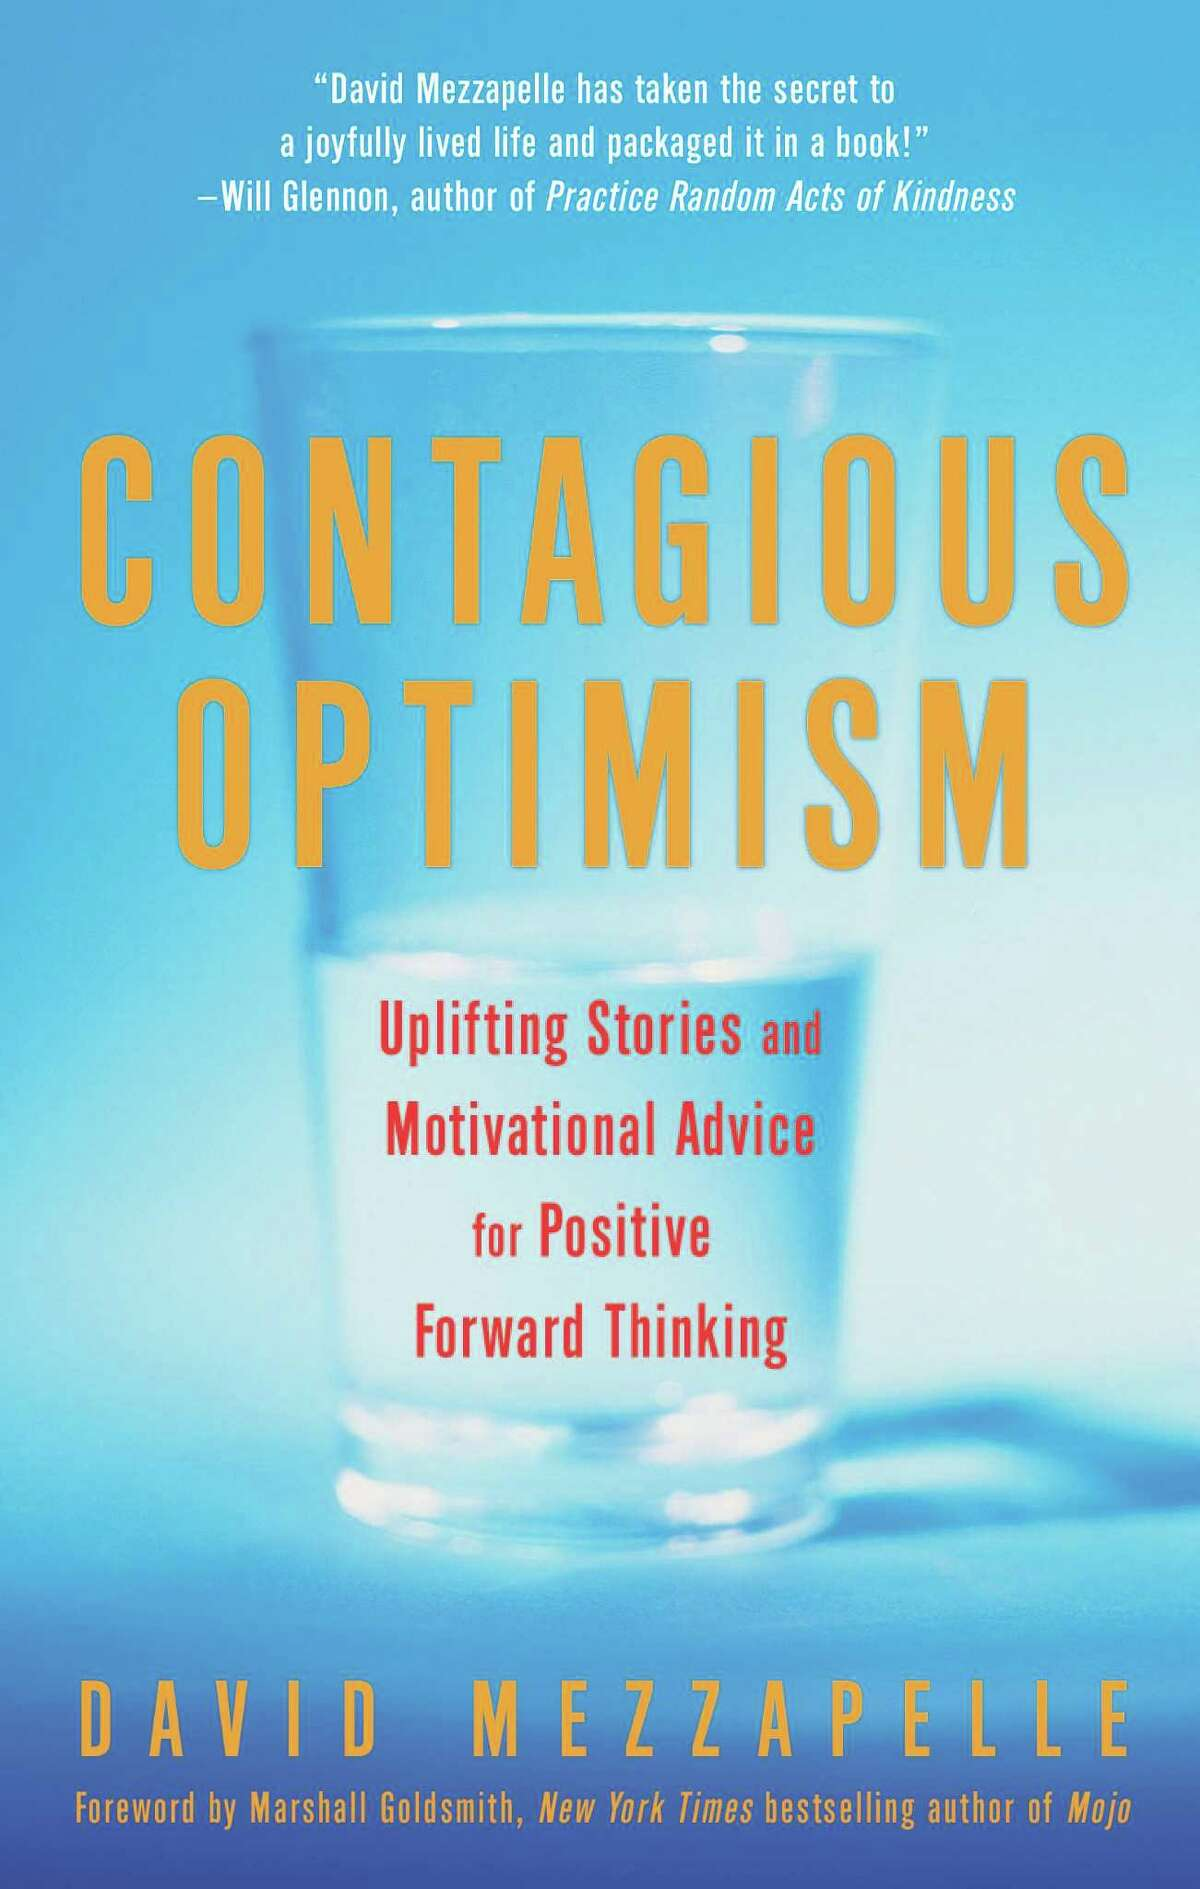 """Florida businessman - and Fairfield University alumnus - David Mezzapelle enlisted three Fairfield University professors and more than a dozen students to edit his new book """"Contragious Optimism."""""""